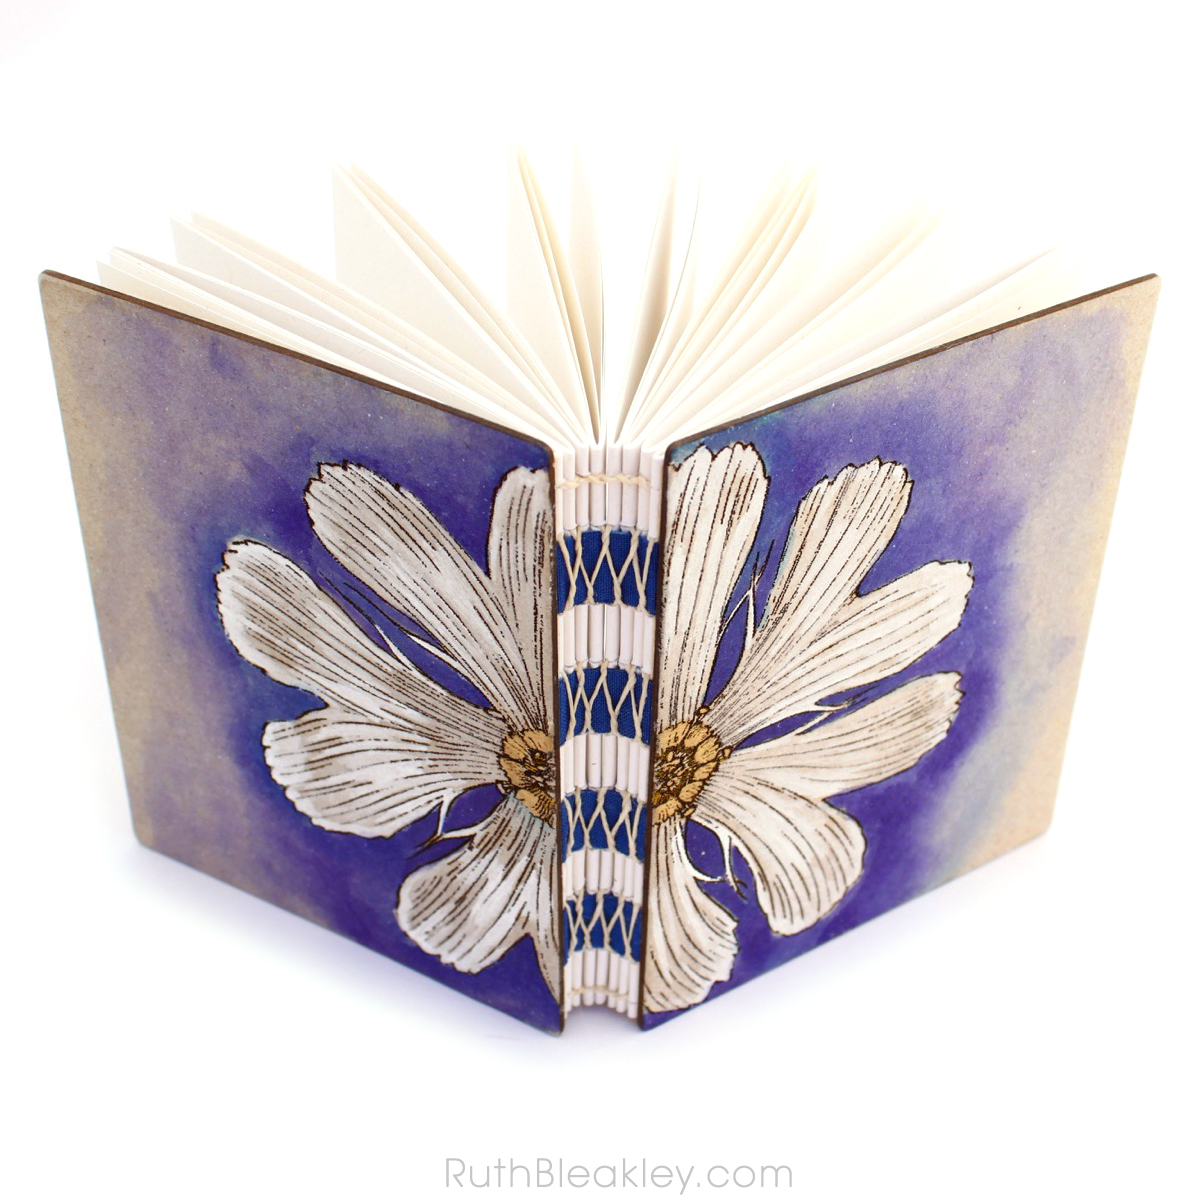 Unlined Art Journal with Purple and White Daisy handpainted by book artist Ruth Bleakley - 2